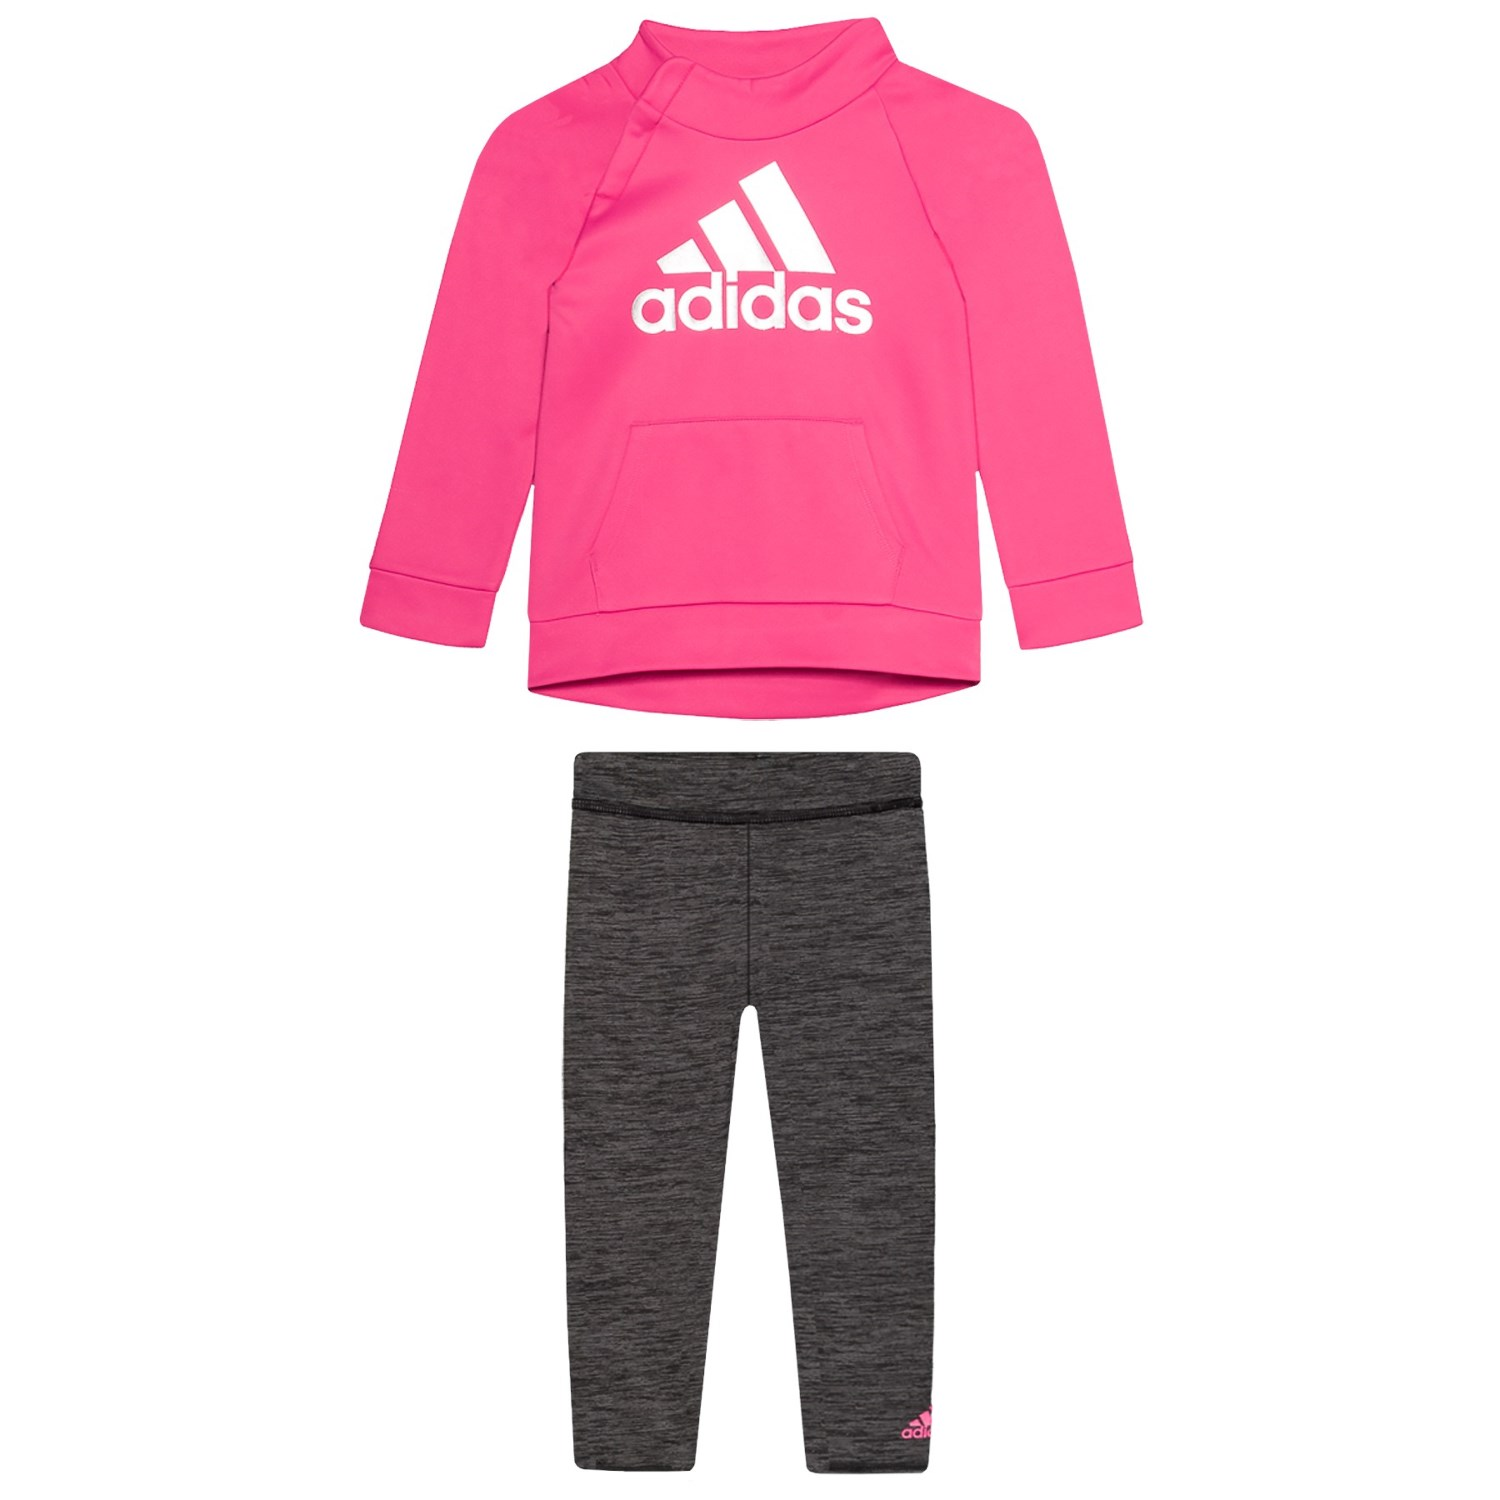 adidas leggings toddler